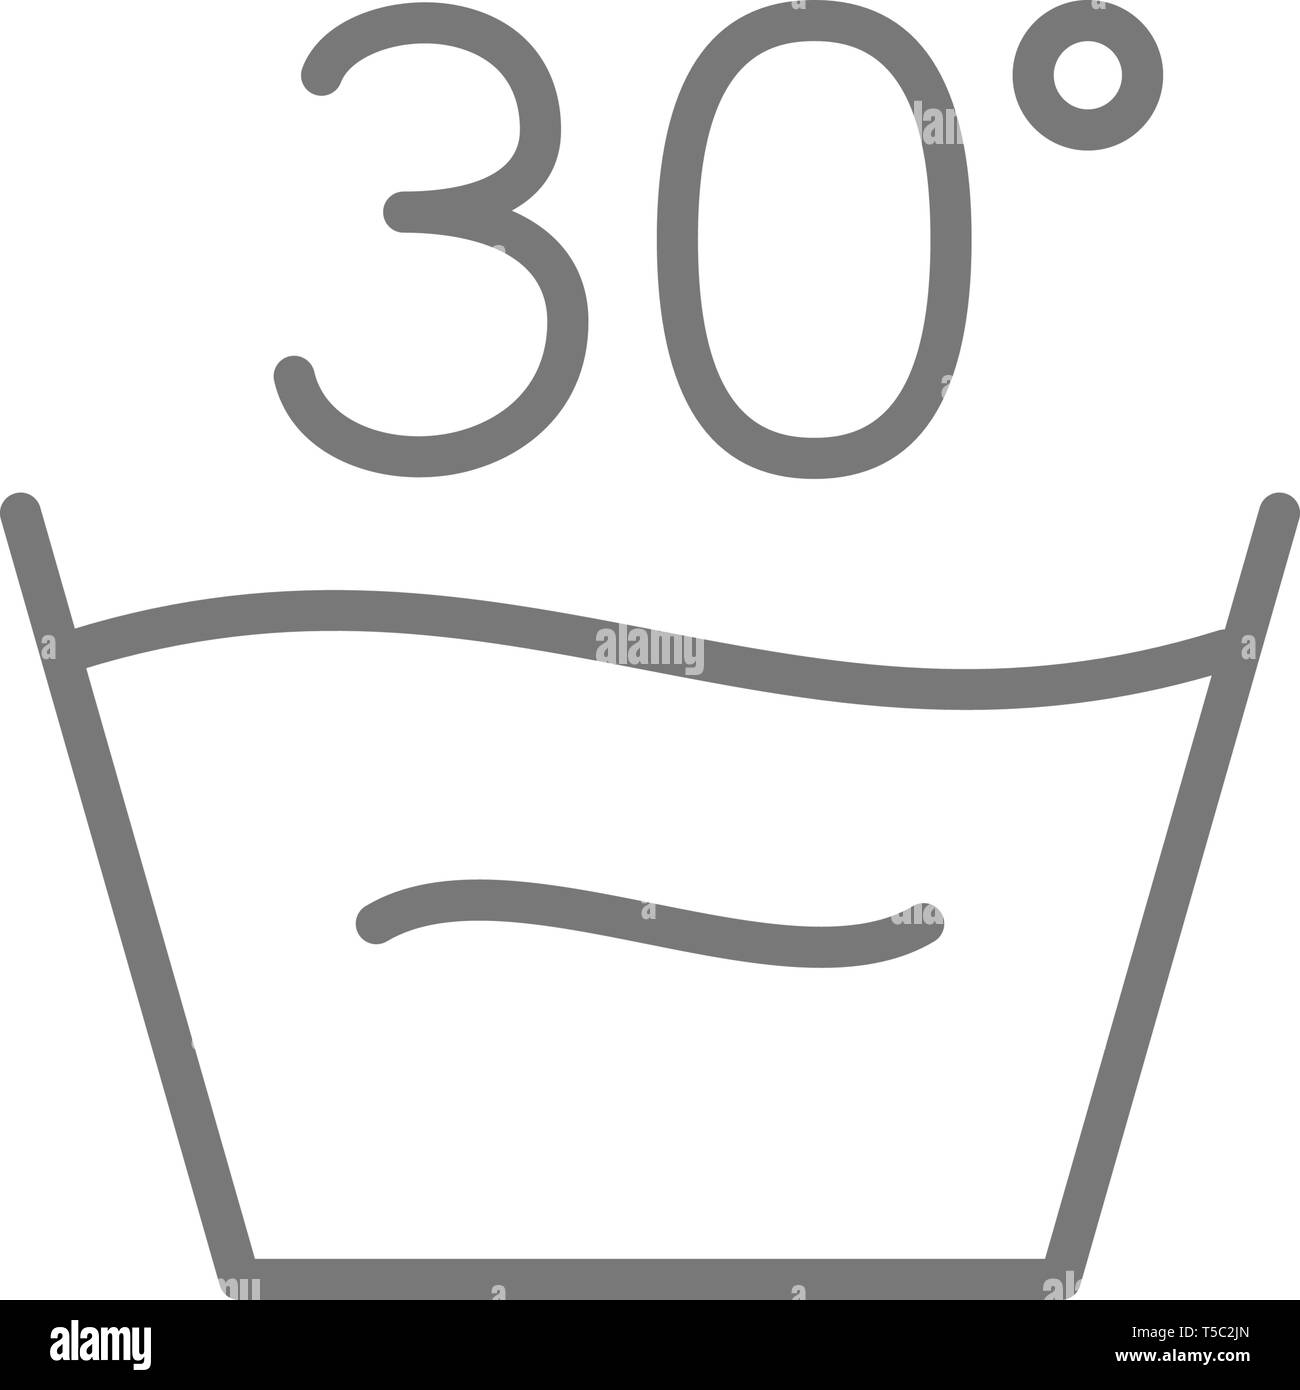 Gentle, delicate laundry, 30 degrees washing temperature line icon. - Stock Vector